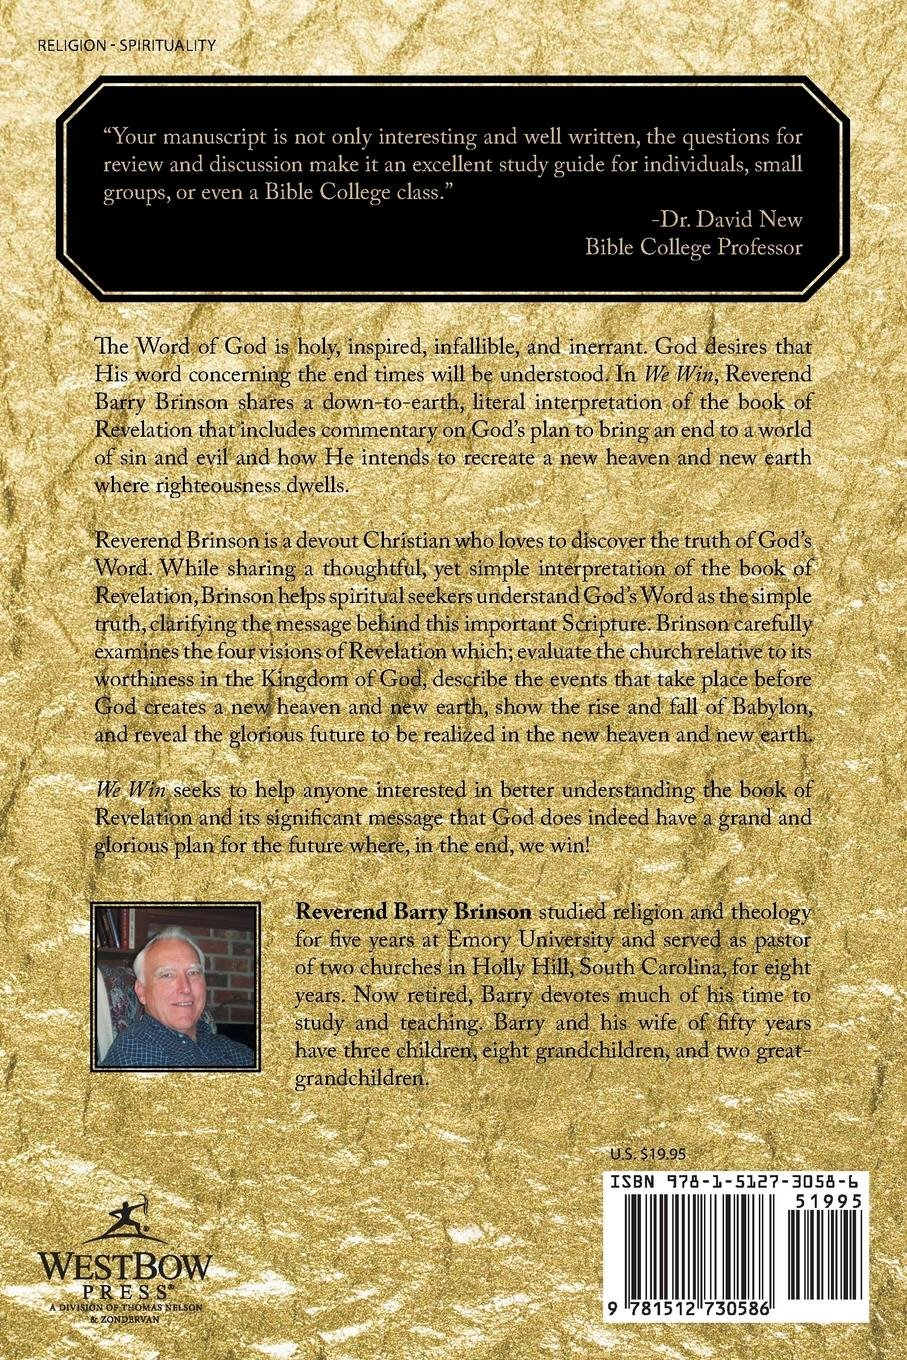 Literal Commentary and Study Guide on the Book of Revelation: Barry  Brinson: 9781512730586: Amazon.com: Books